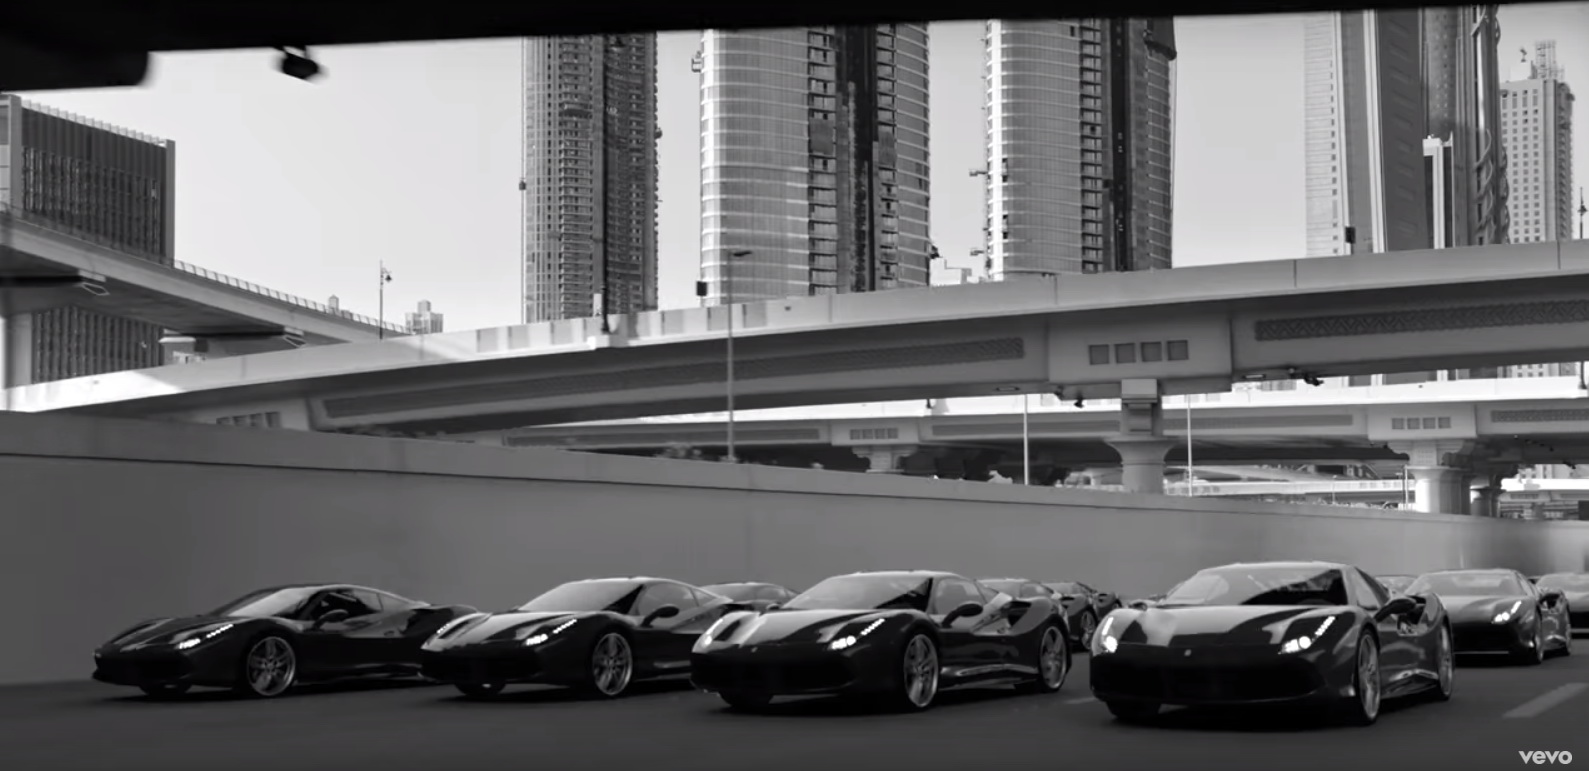 Ferrari 488 GTB - Imagine Dragons - Thunder Official Music Video Product Placement